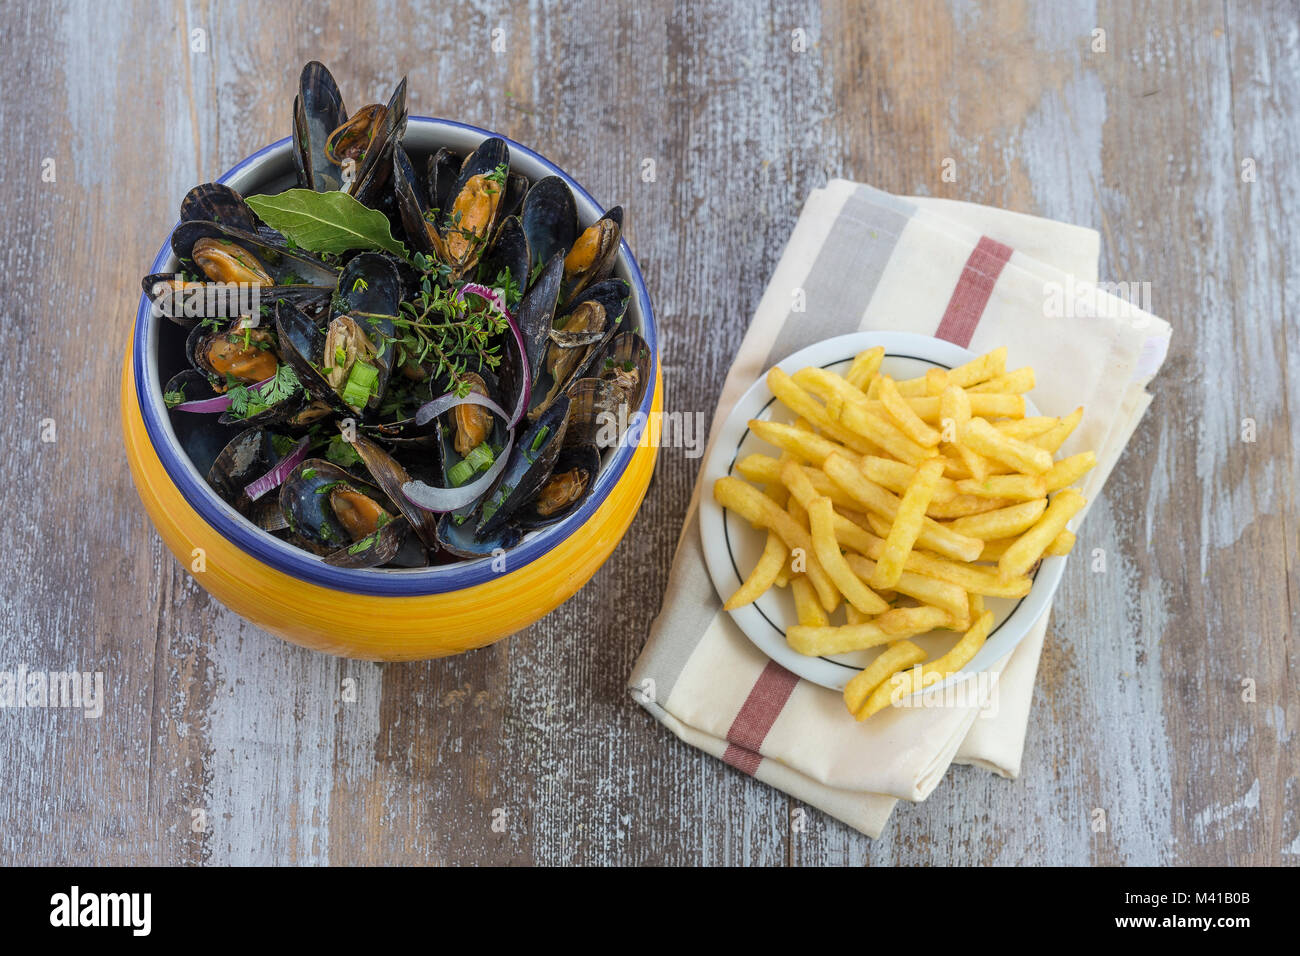 French blue mussel with herbs in a yellow bowl with french fries glass ramekin on napkin Seafood in a wooden board - Stock Image